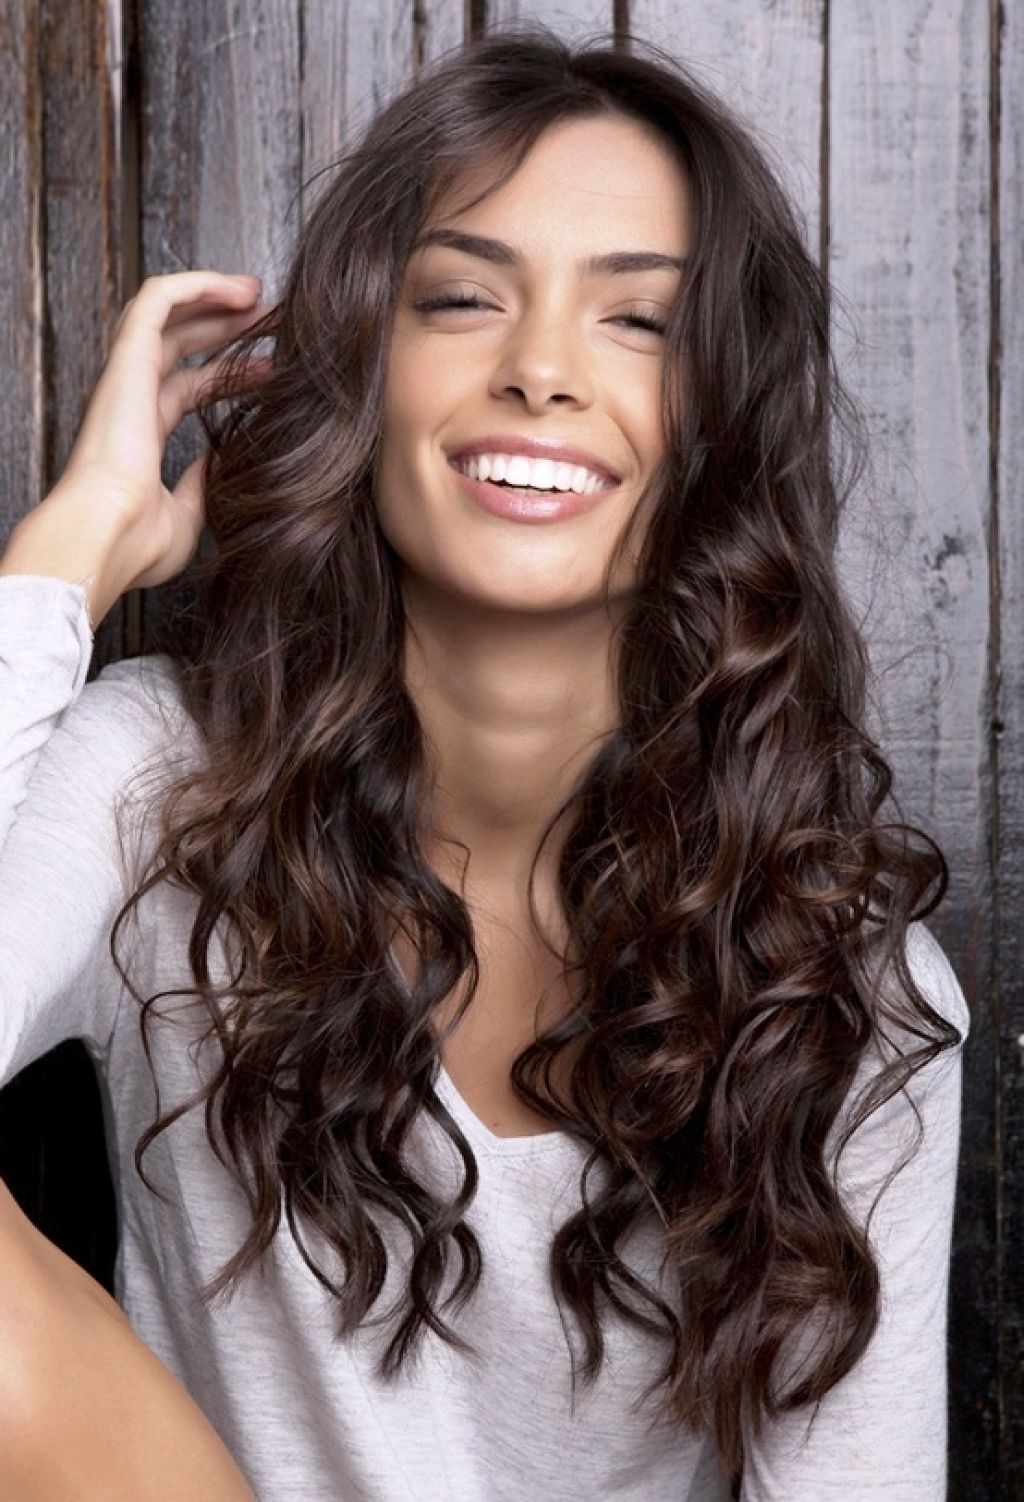 Hair Cuts : Cool Naturally Curly Haircuts Short For Round Faces Long With Regard To Current Medium Haircuts For Naturally Curly Hair And Round Face (View 8 of 20)